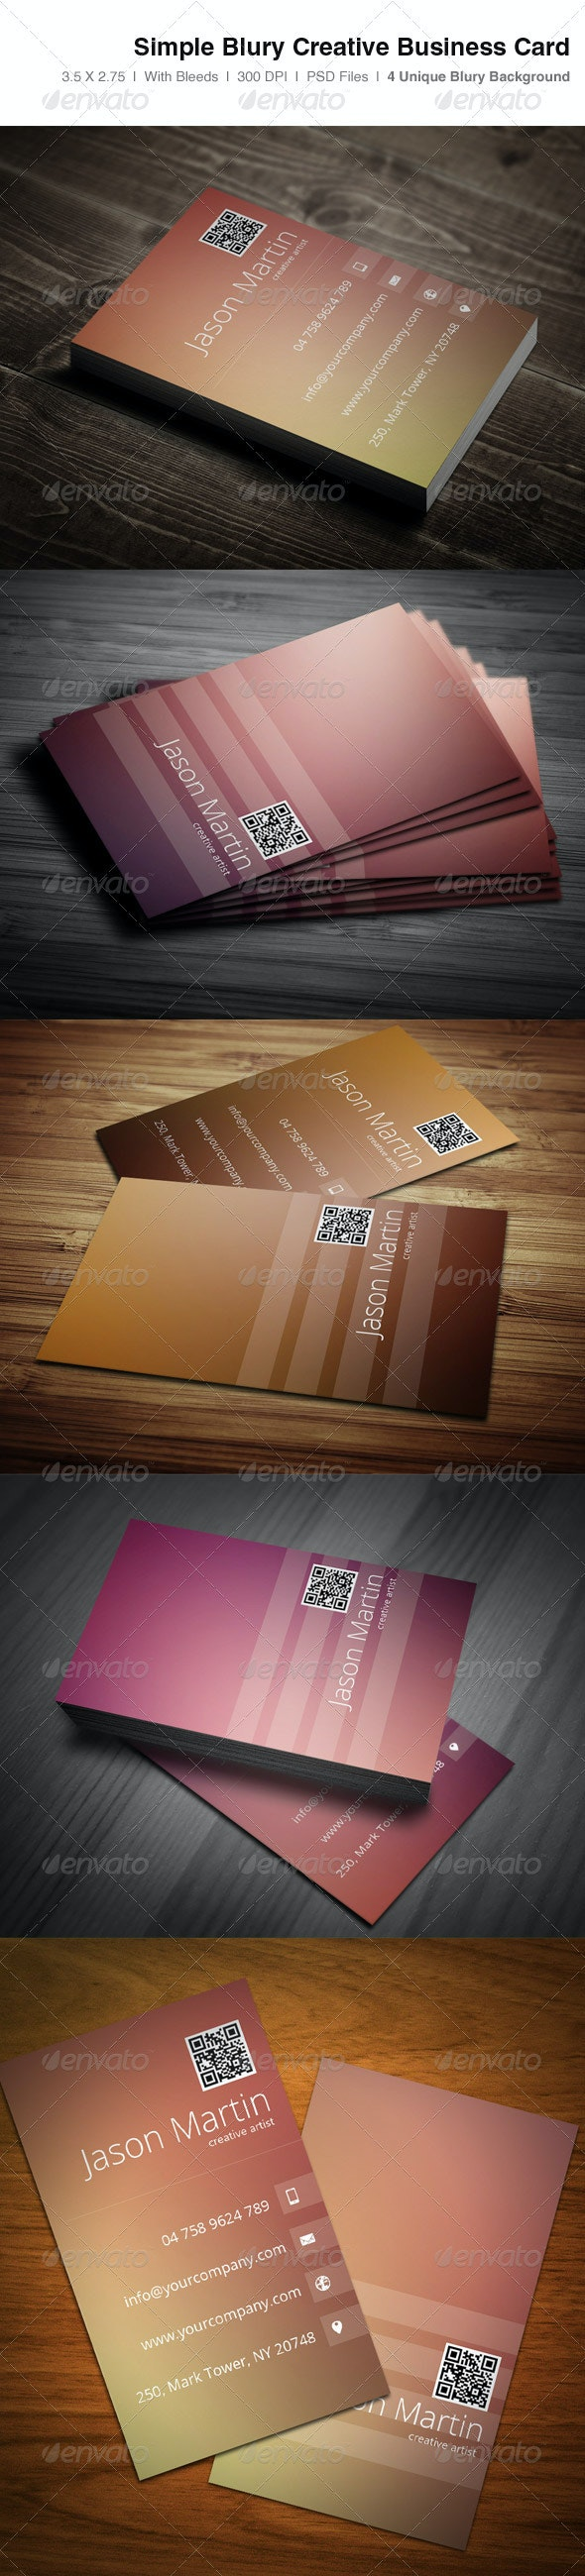 Simple Blury Creative Business Card - Creative Business Cards